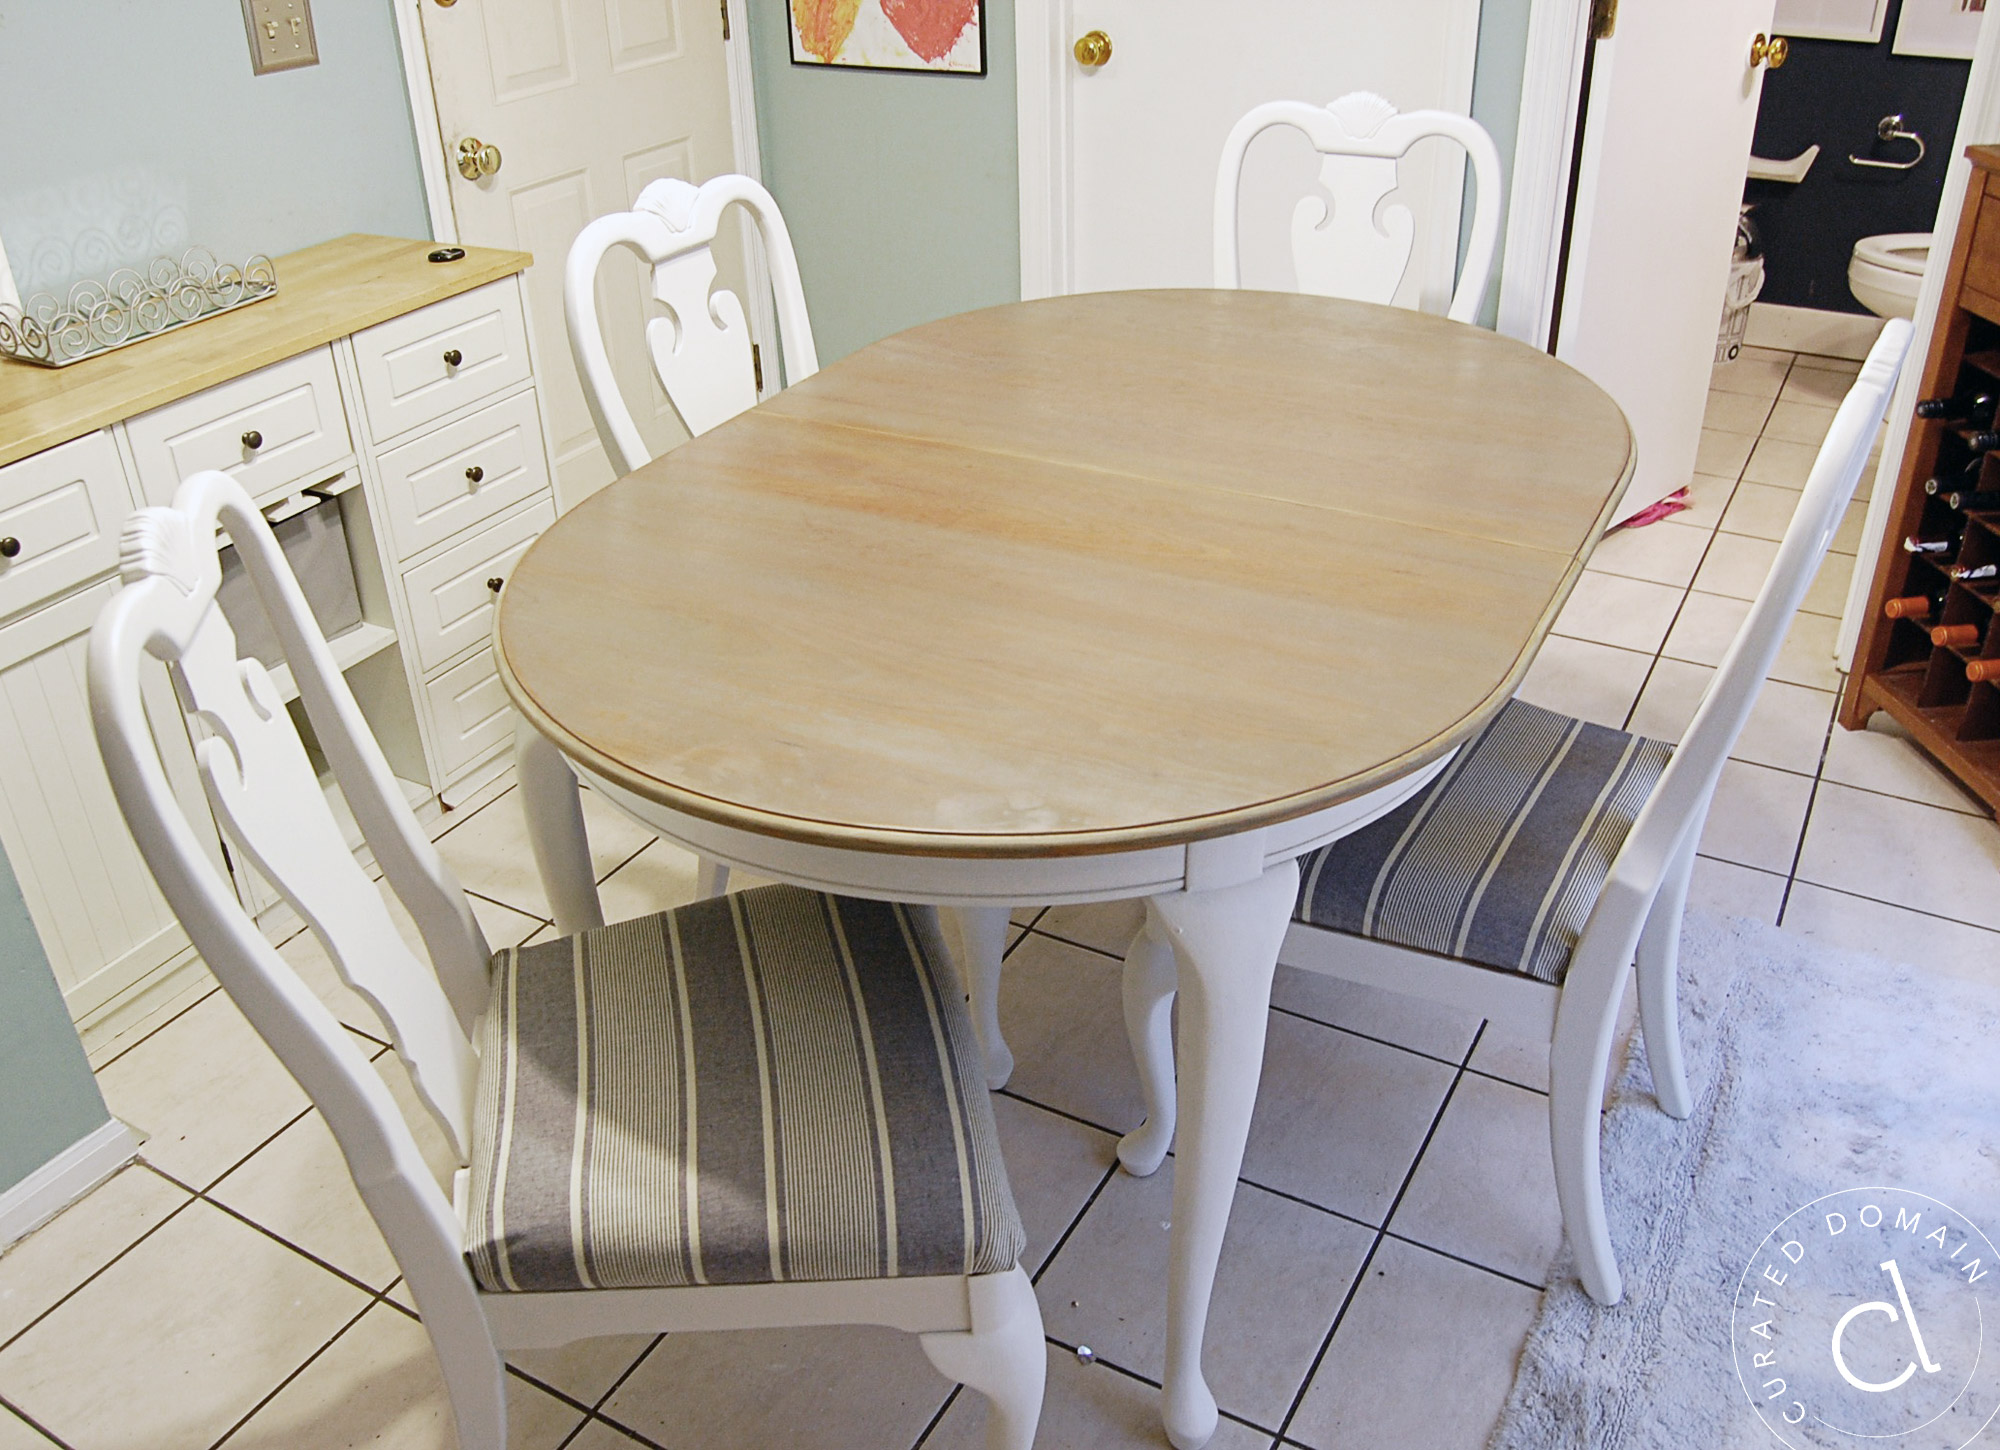 DIY Dining Table Chairs Makeover